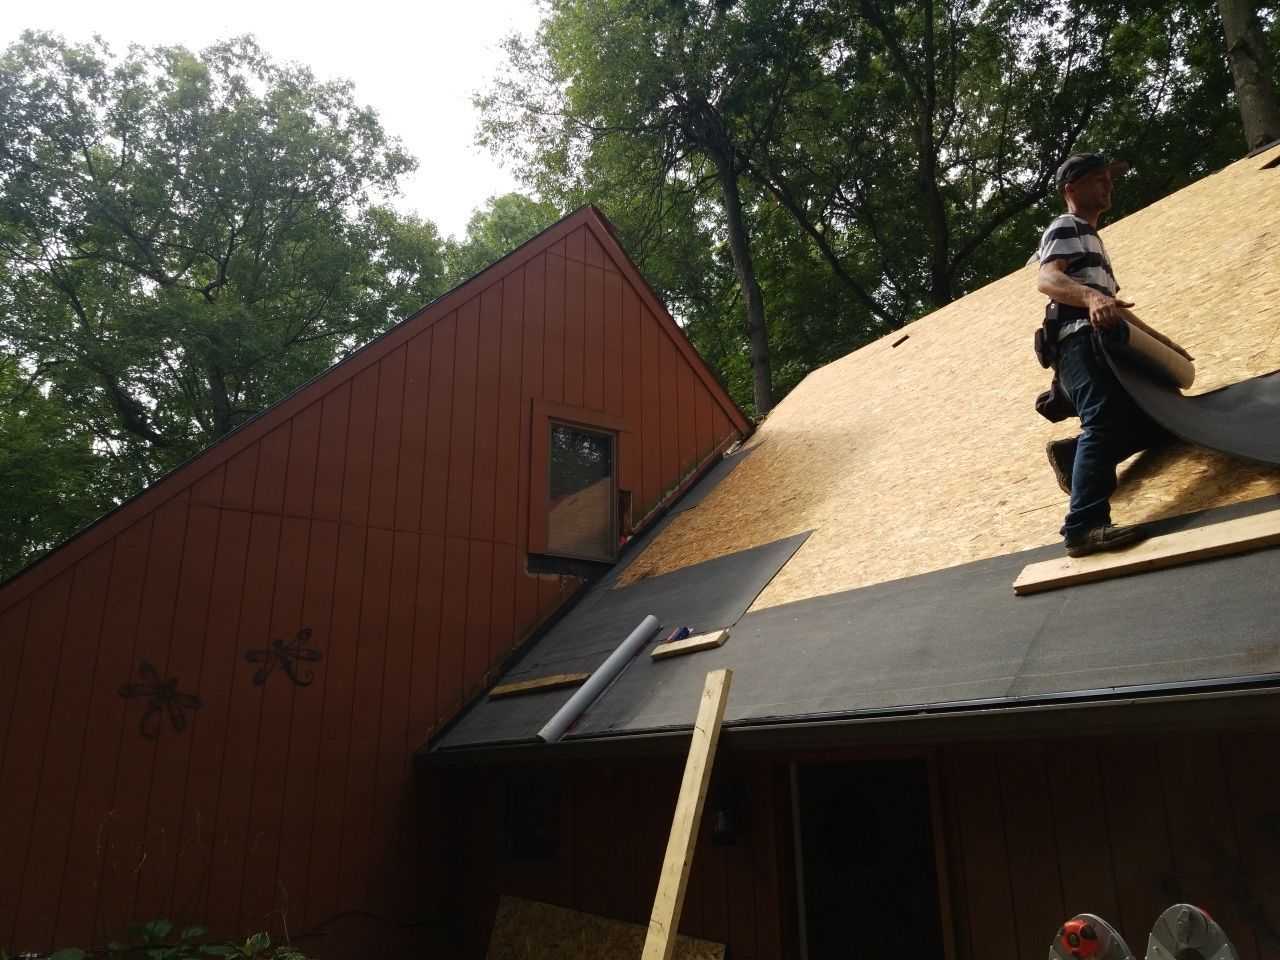 Oakland County Roof Replacement in Progress